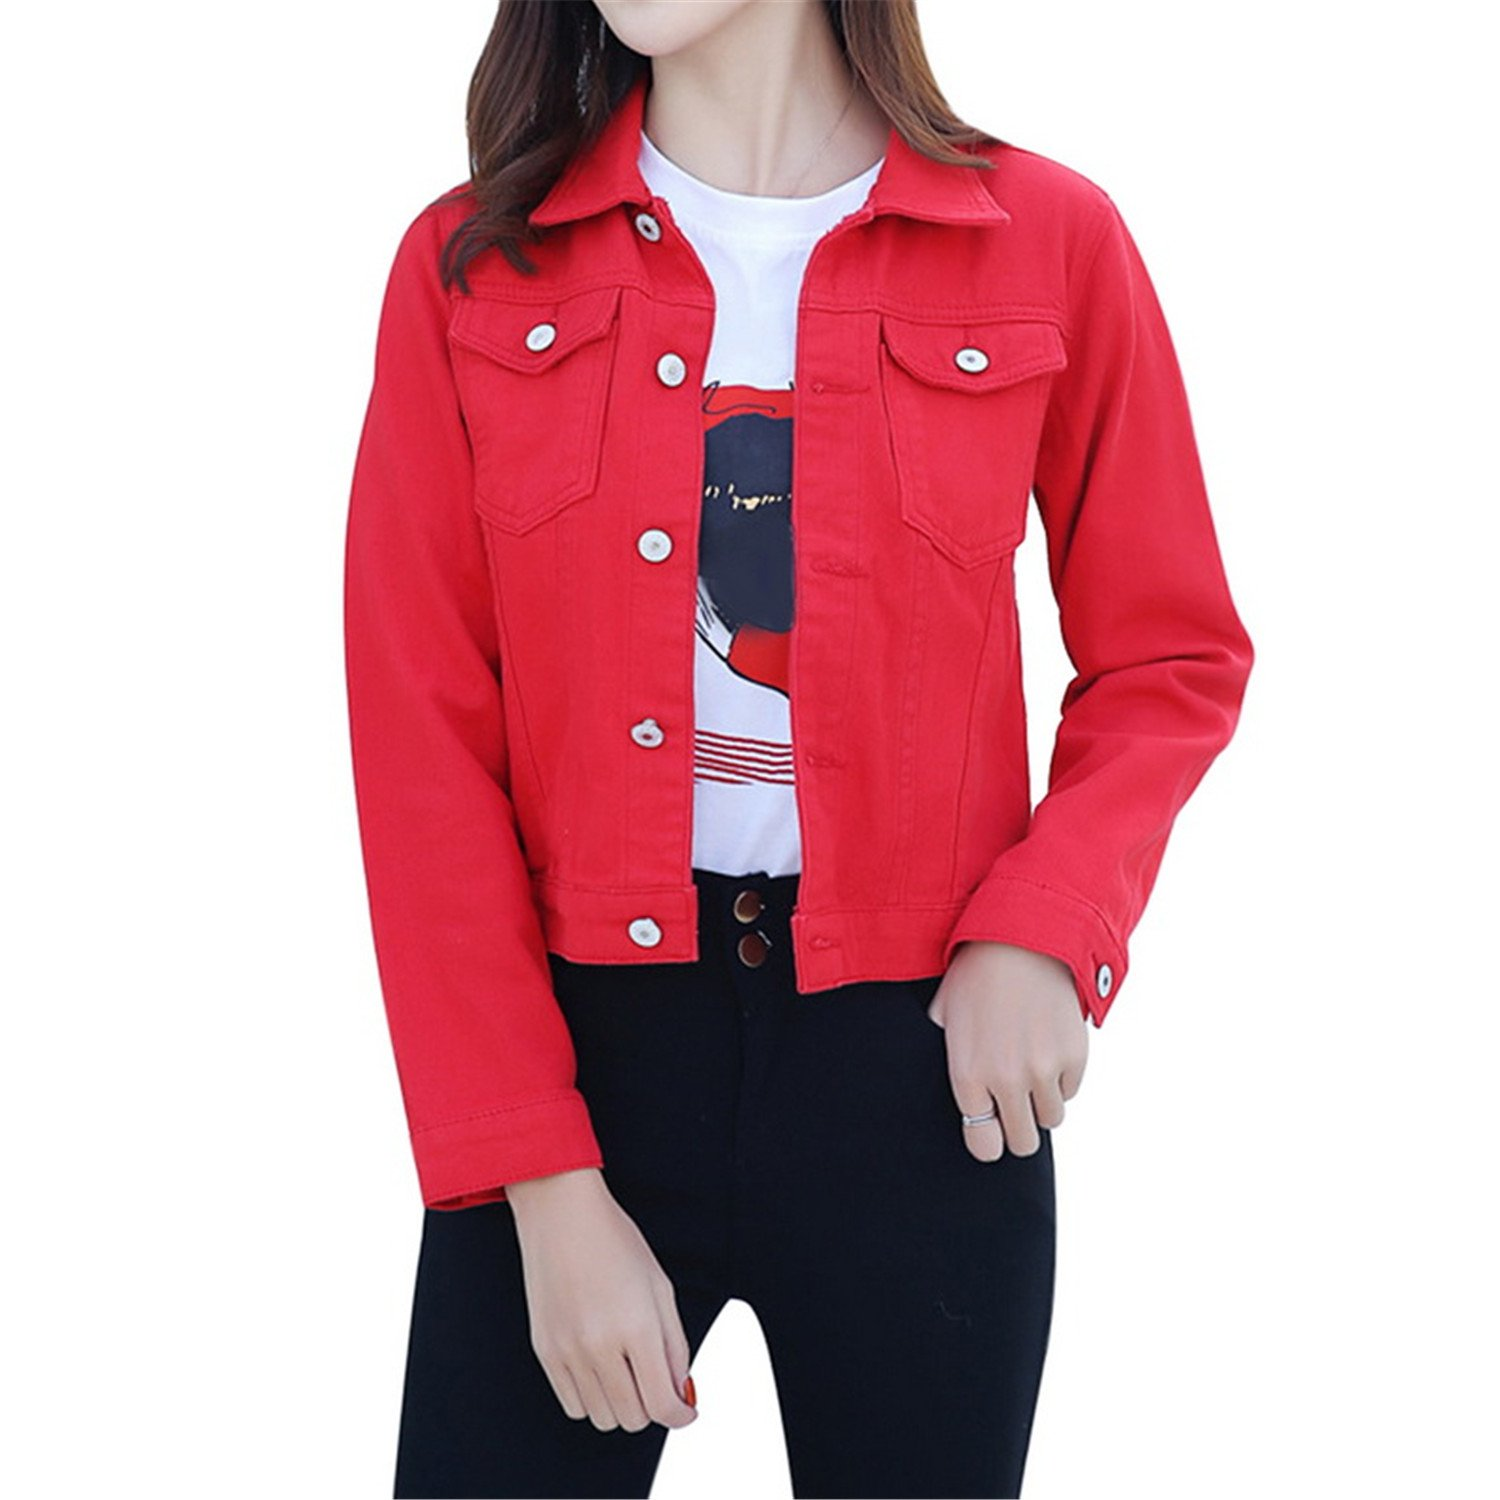 Modern Style 2019 Fashion Jeans Jacket Women Long Sleeve ...